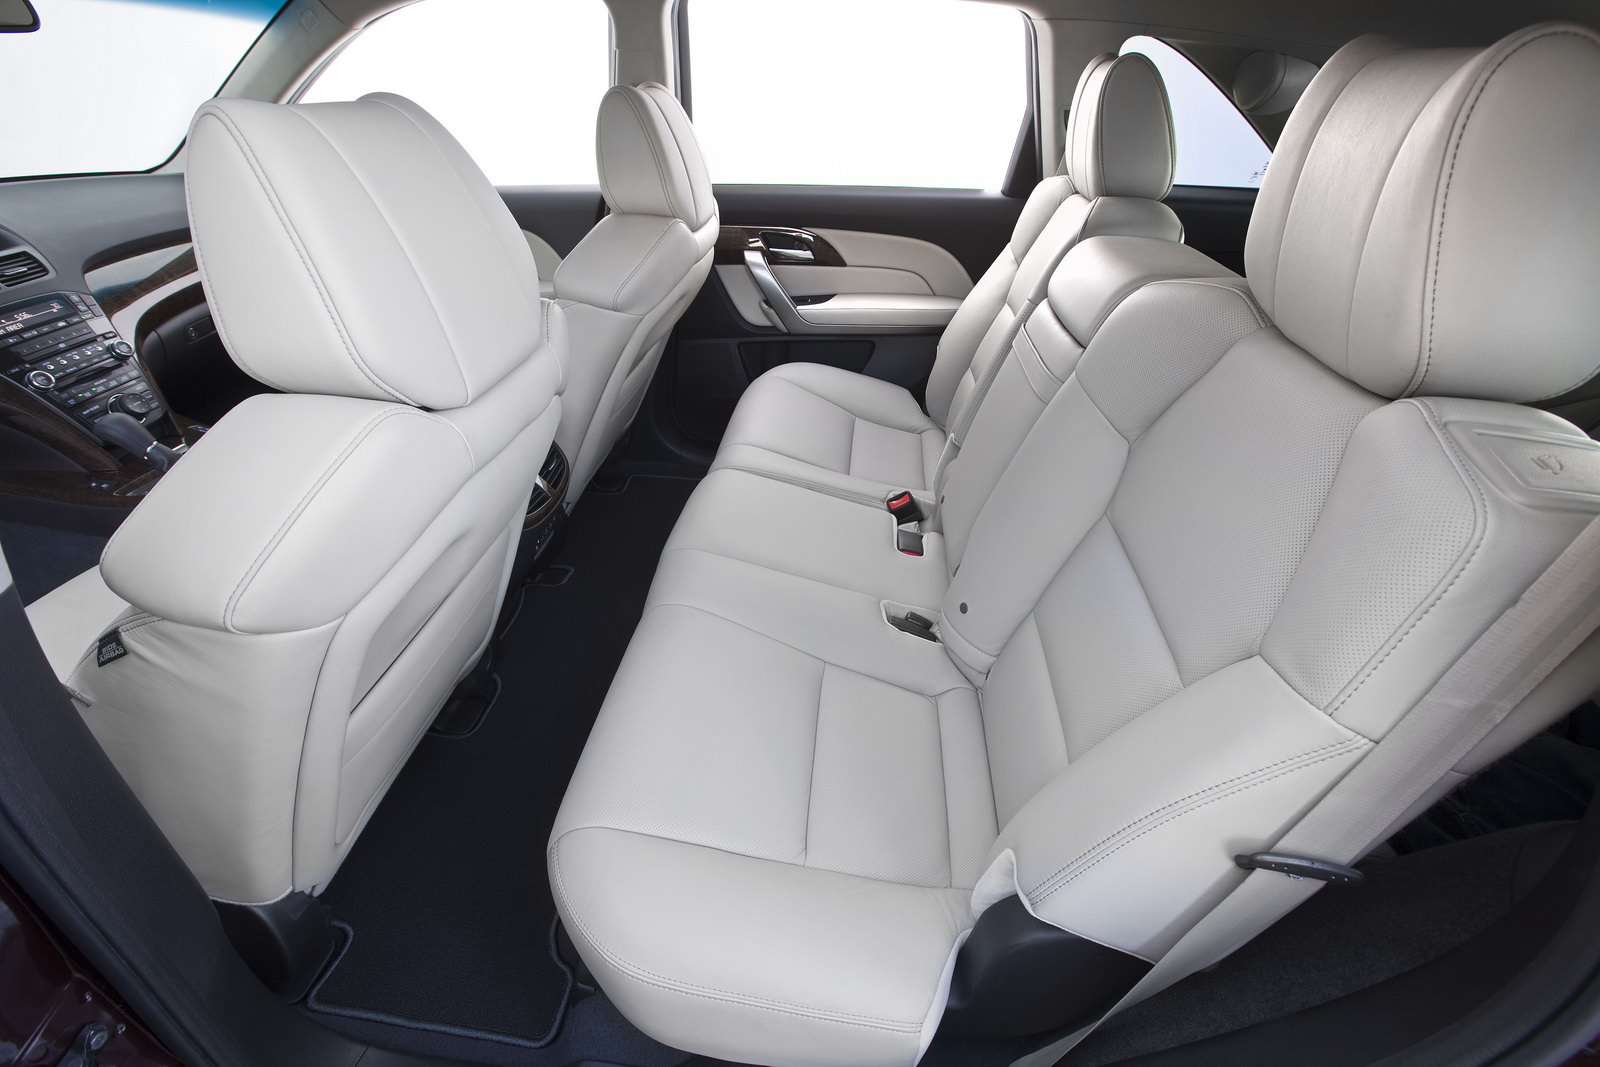 2010 Acura MDX 22 Mildly Facelifted 2010 Acura MDX Priced from $43,040 in the States